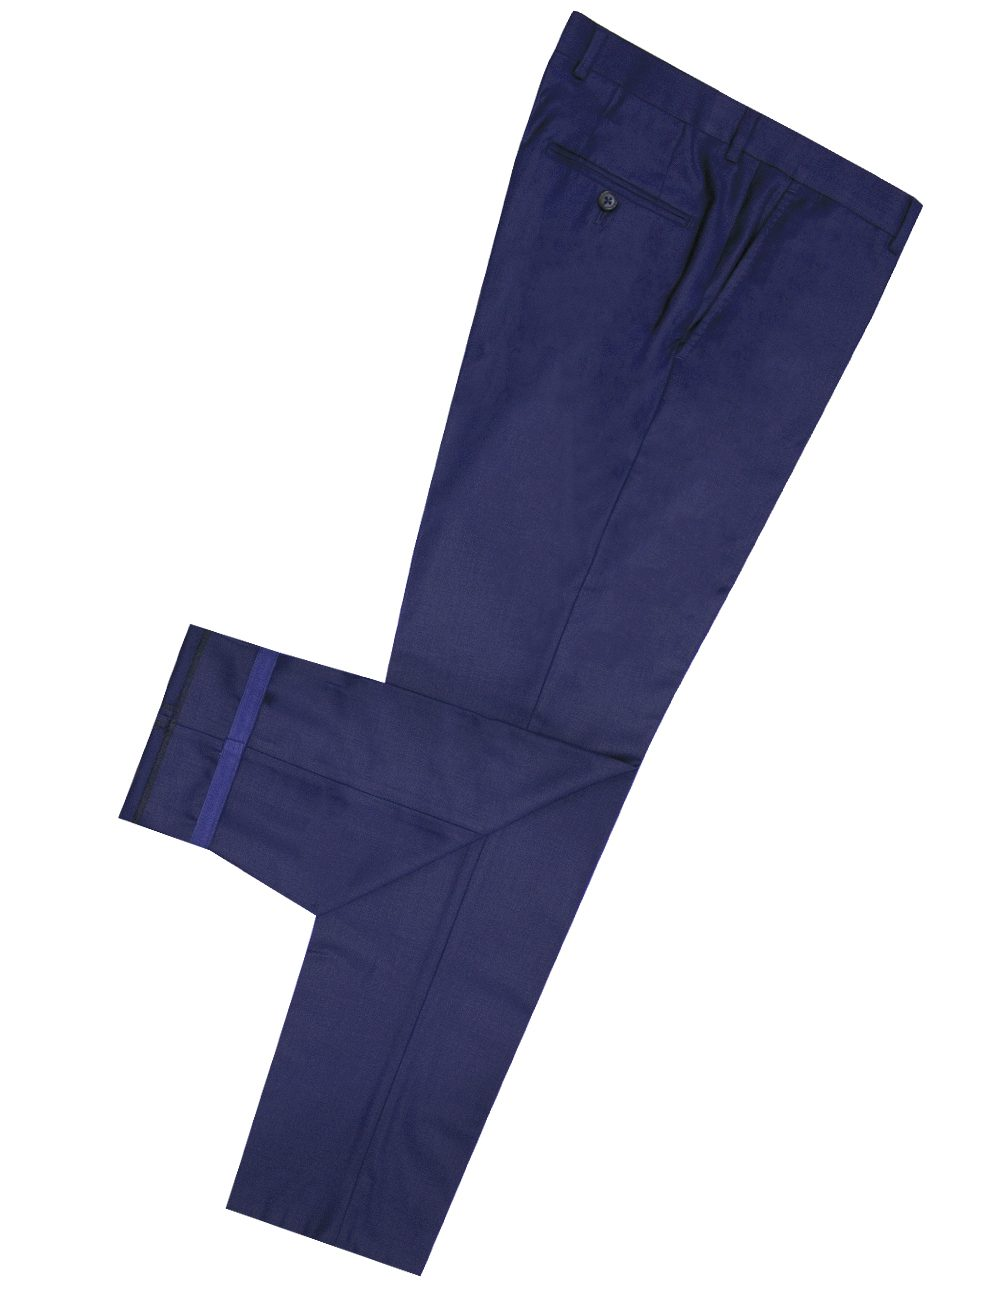 Navy Mixed Dress Pants - DP1A9.4